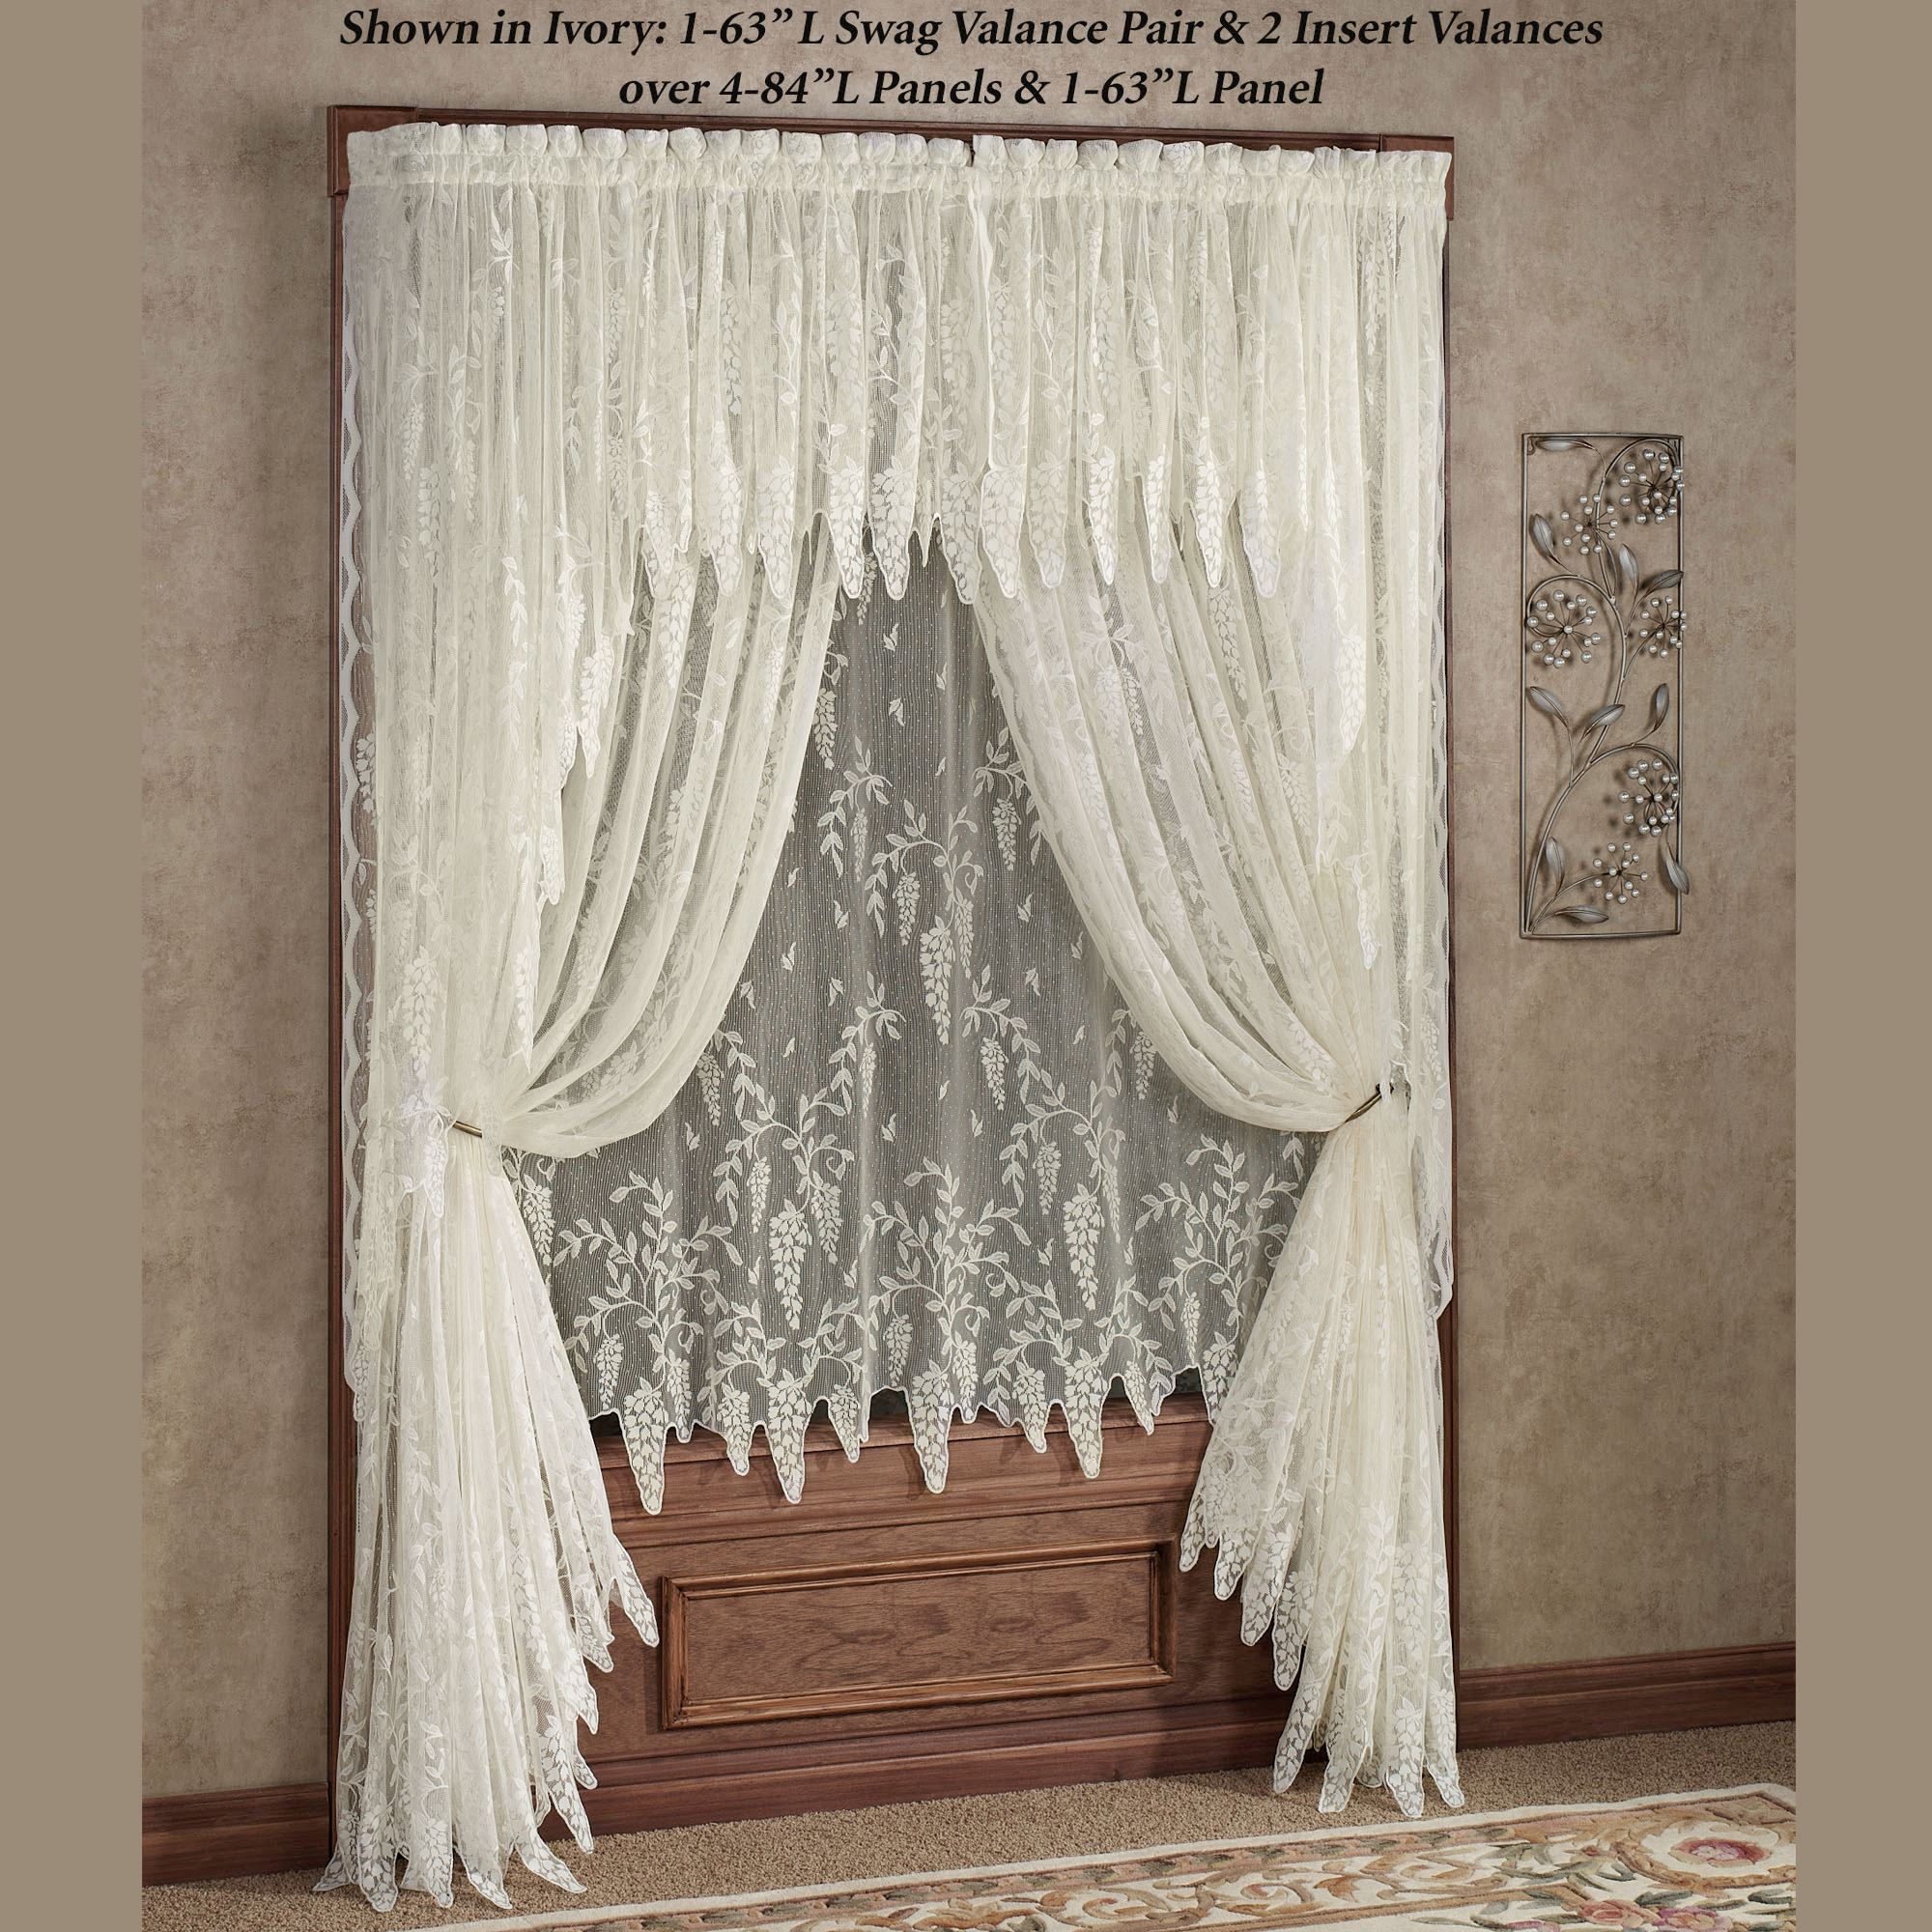 Wisteria Arbor Lace Window Treatments With Sheer Lace Elongated Kitchen Curtain Tier Pairs (View 20 of 20)